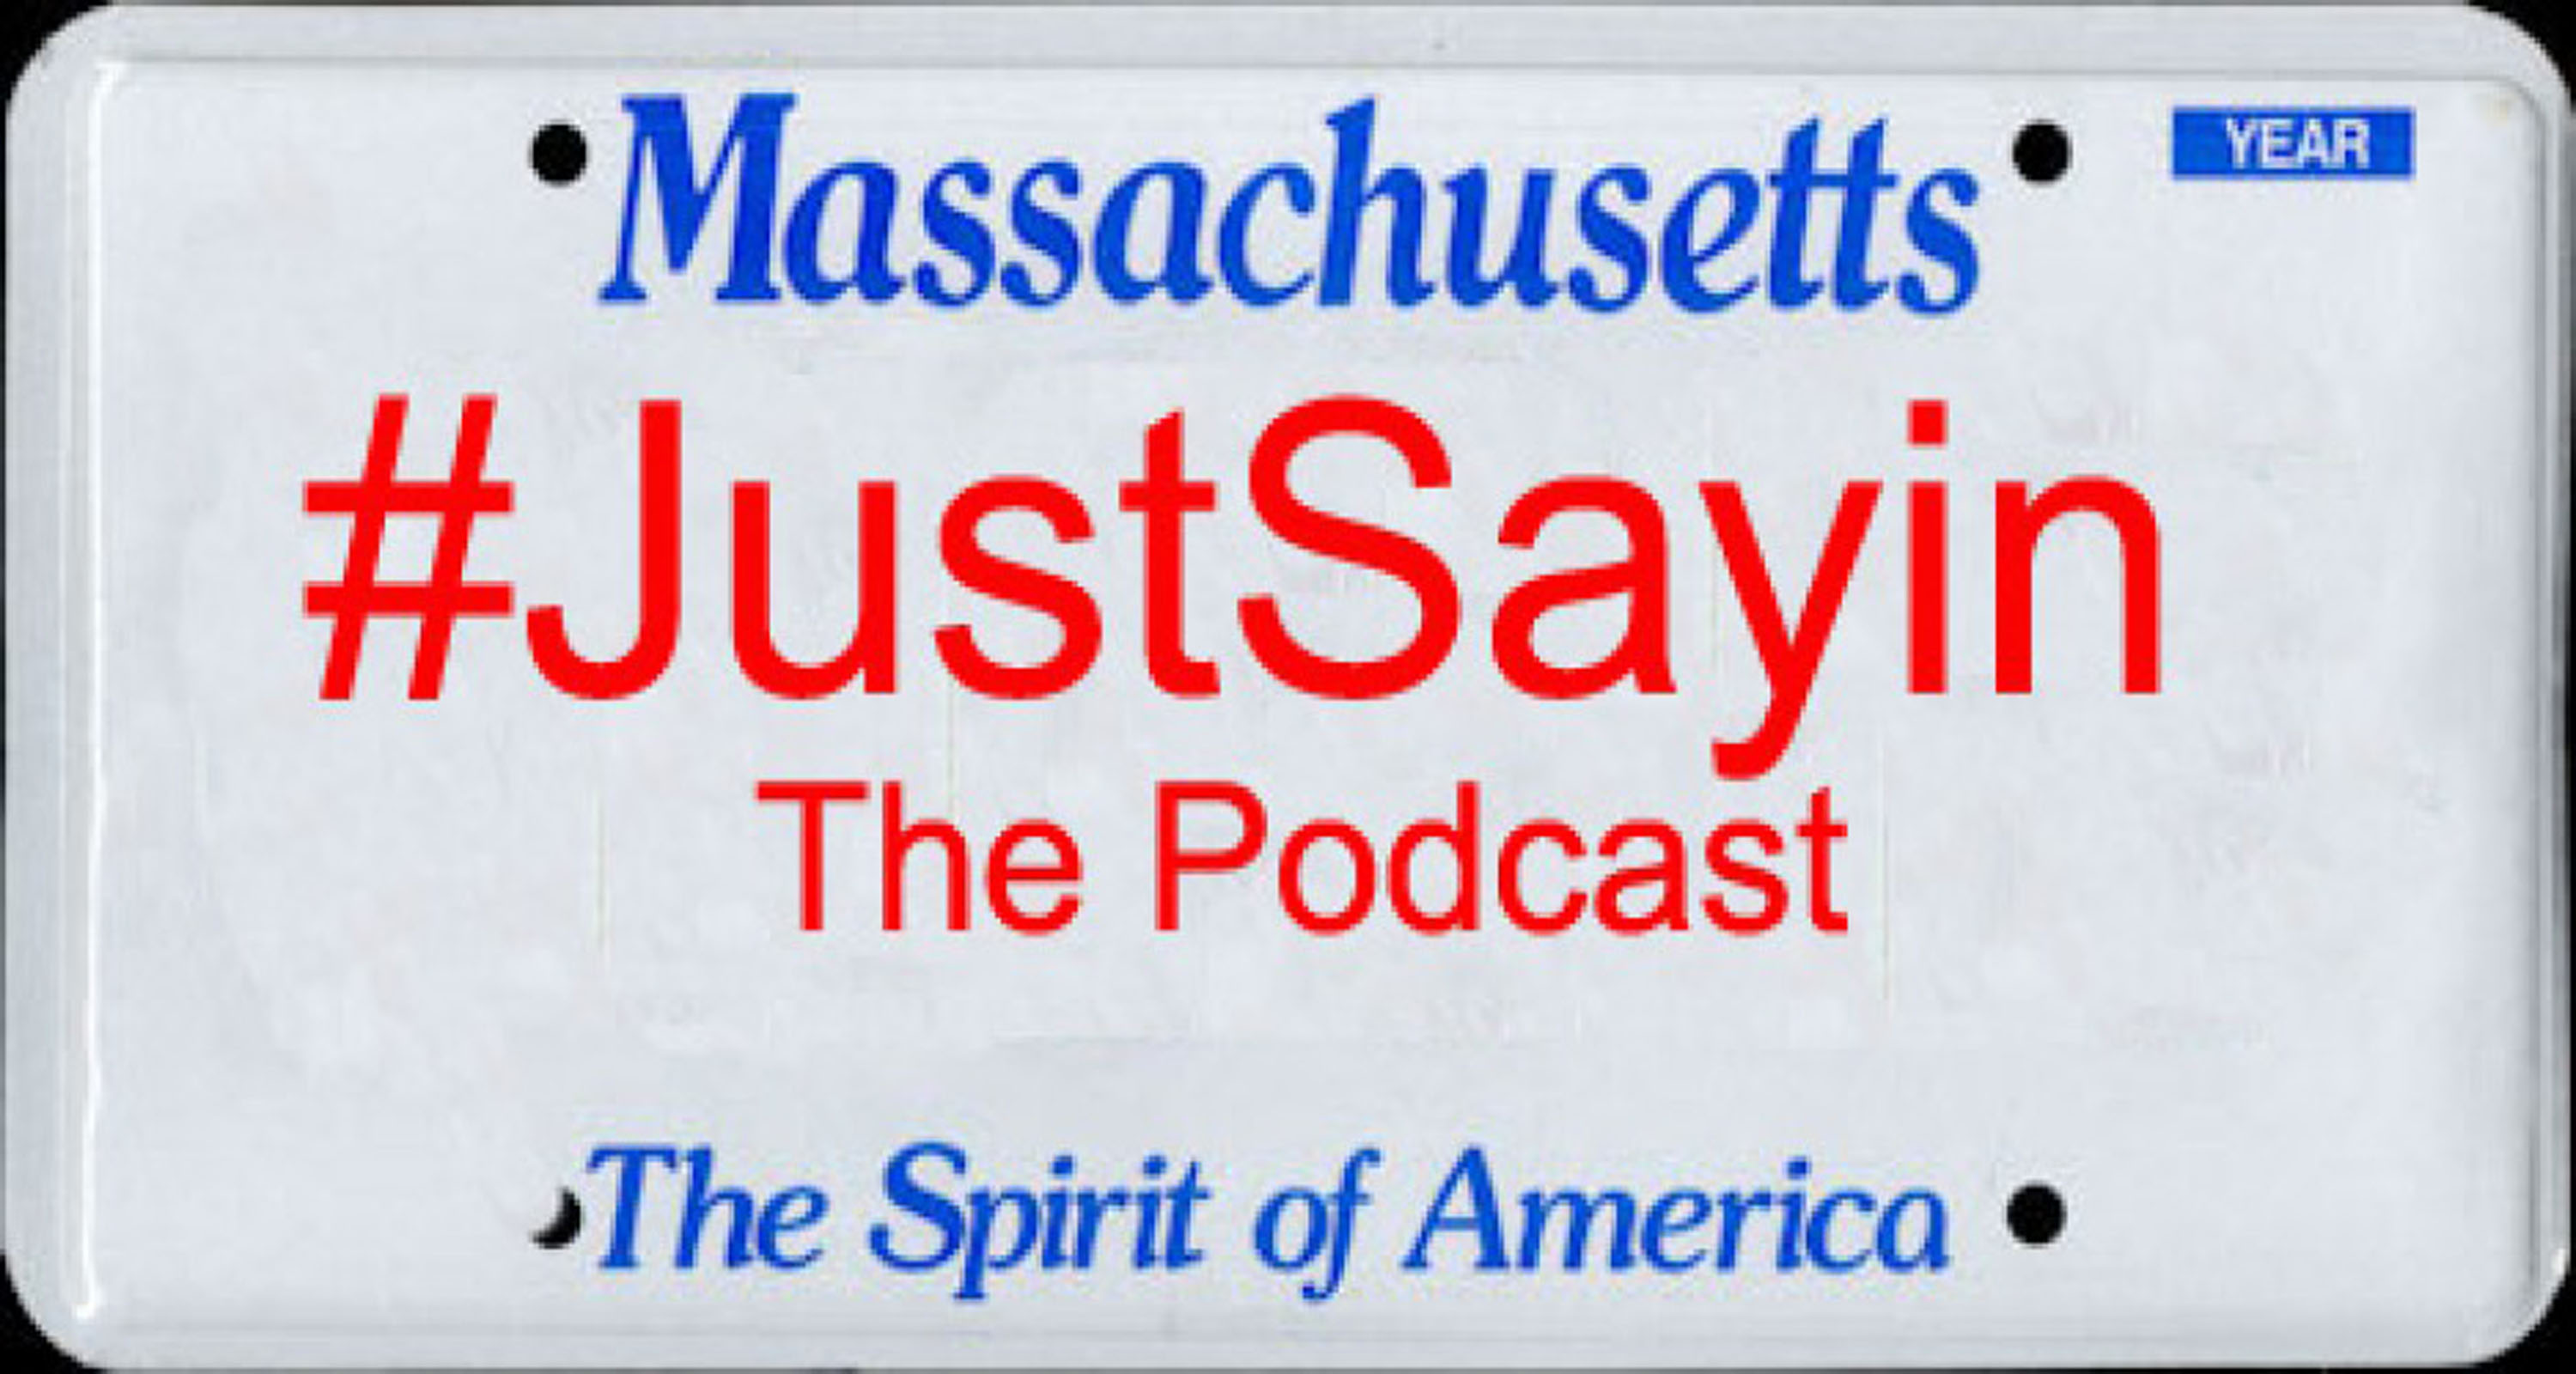 Hashtag Just Sayin' - The Podcast